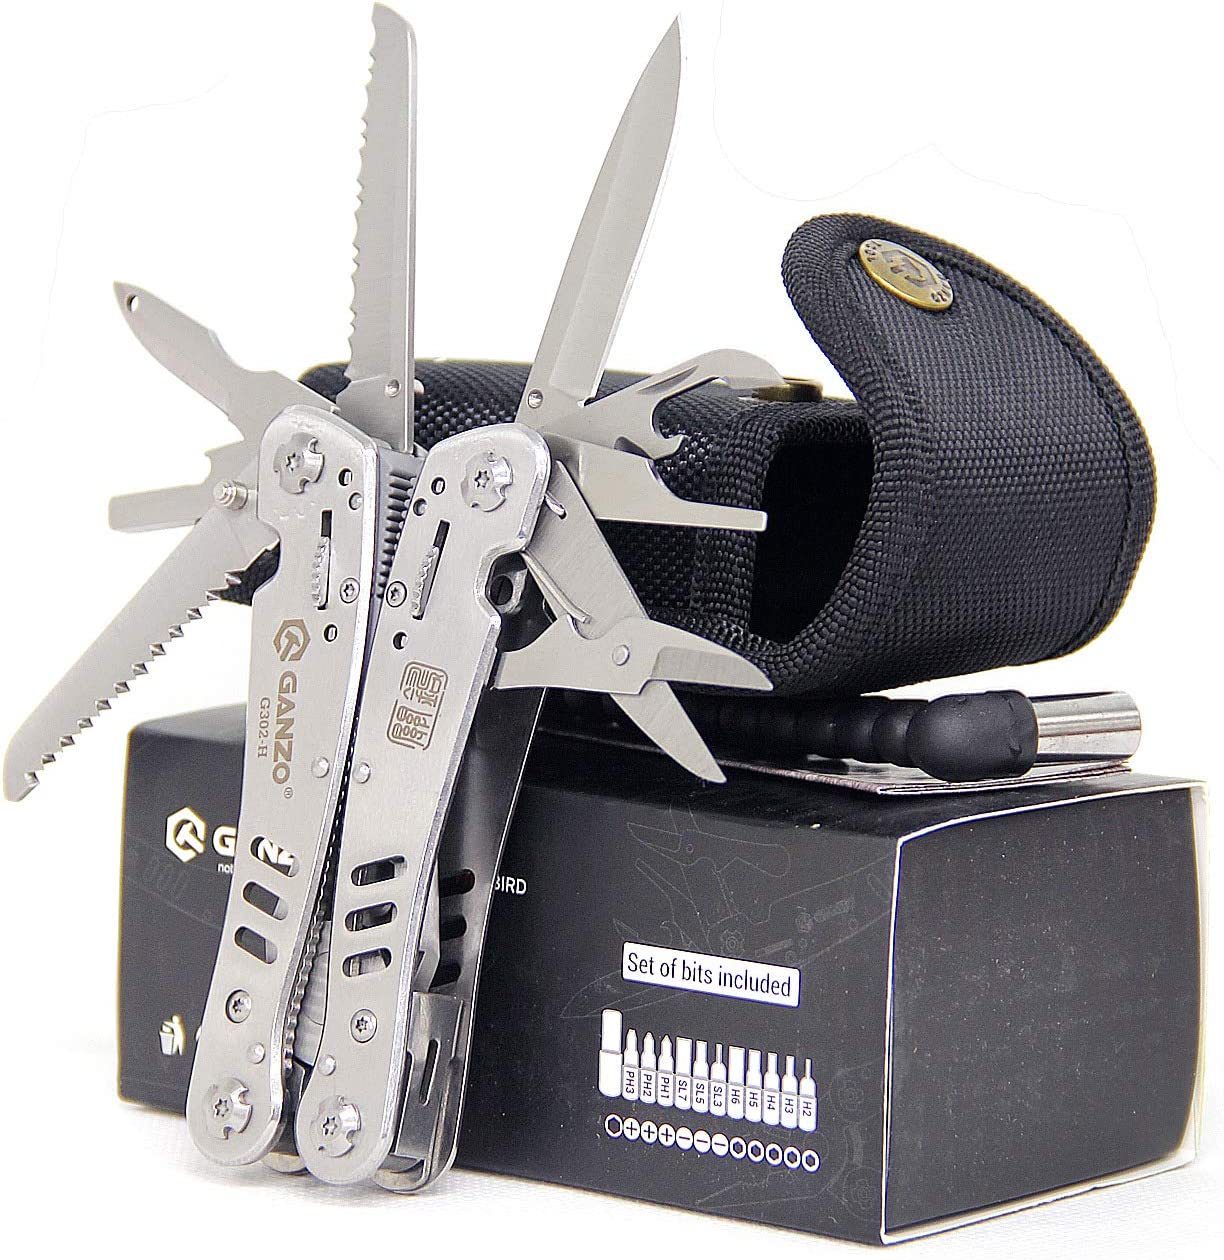 Silver GANZO G202 Multi Pliers Multitool Screwdriver Toolkit Stainless Steel New